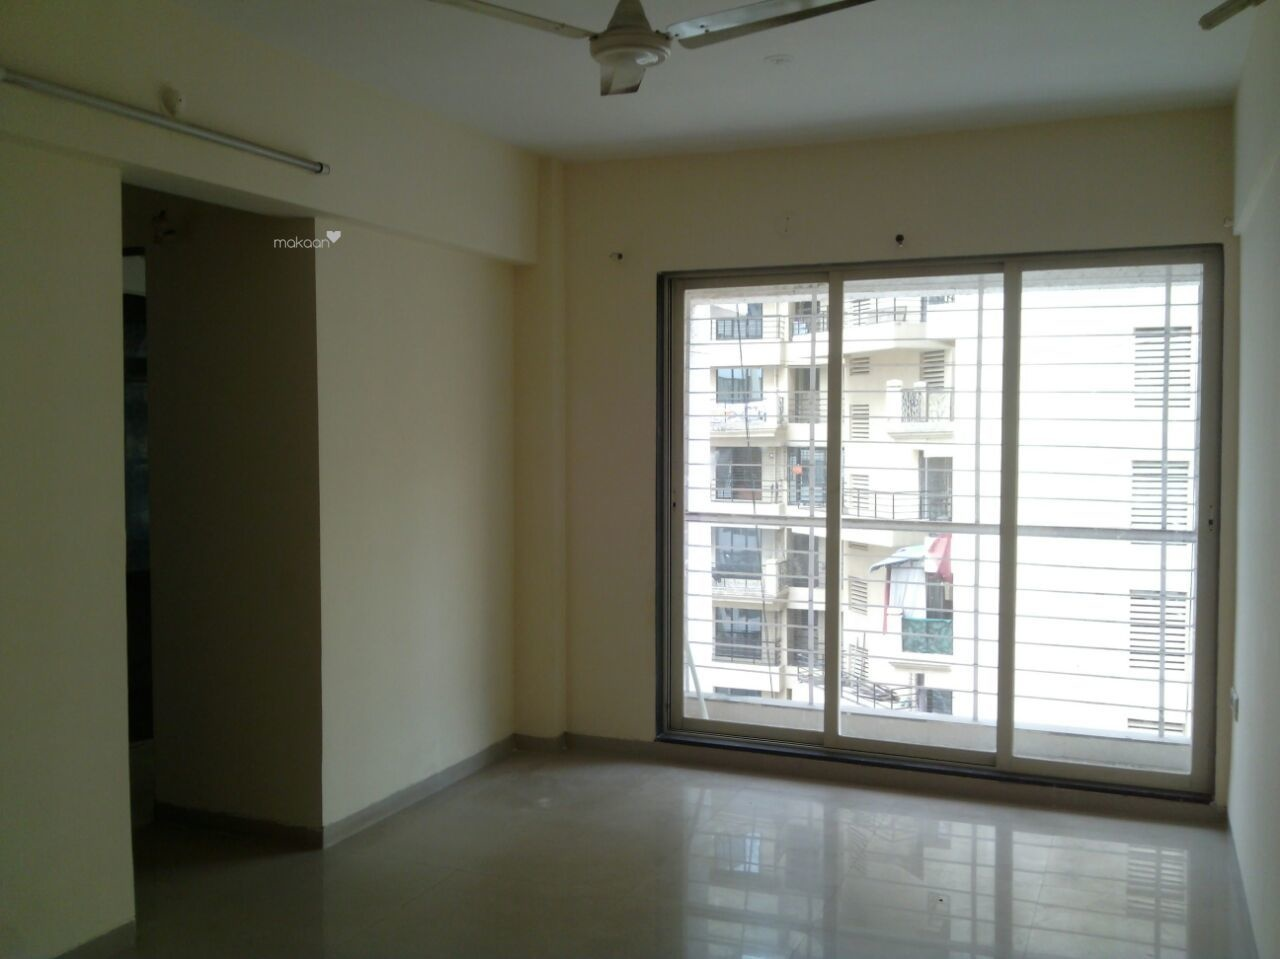 1173 sq ft 2BHK 2BHK+2T (1,173 sq ft) Property By Bhoomi Enterprises In Project, Kharghar